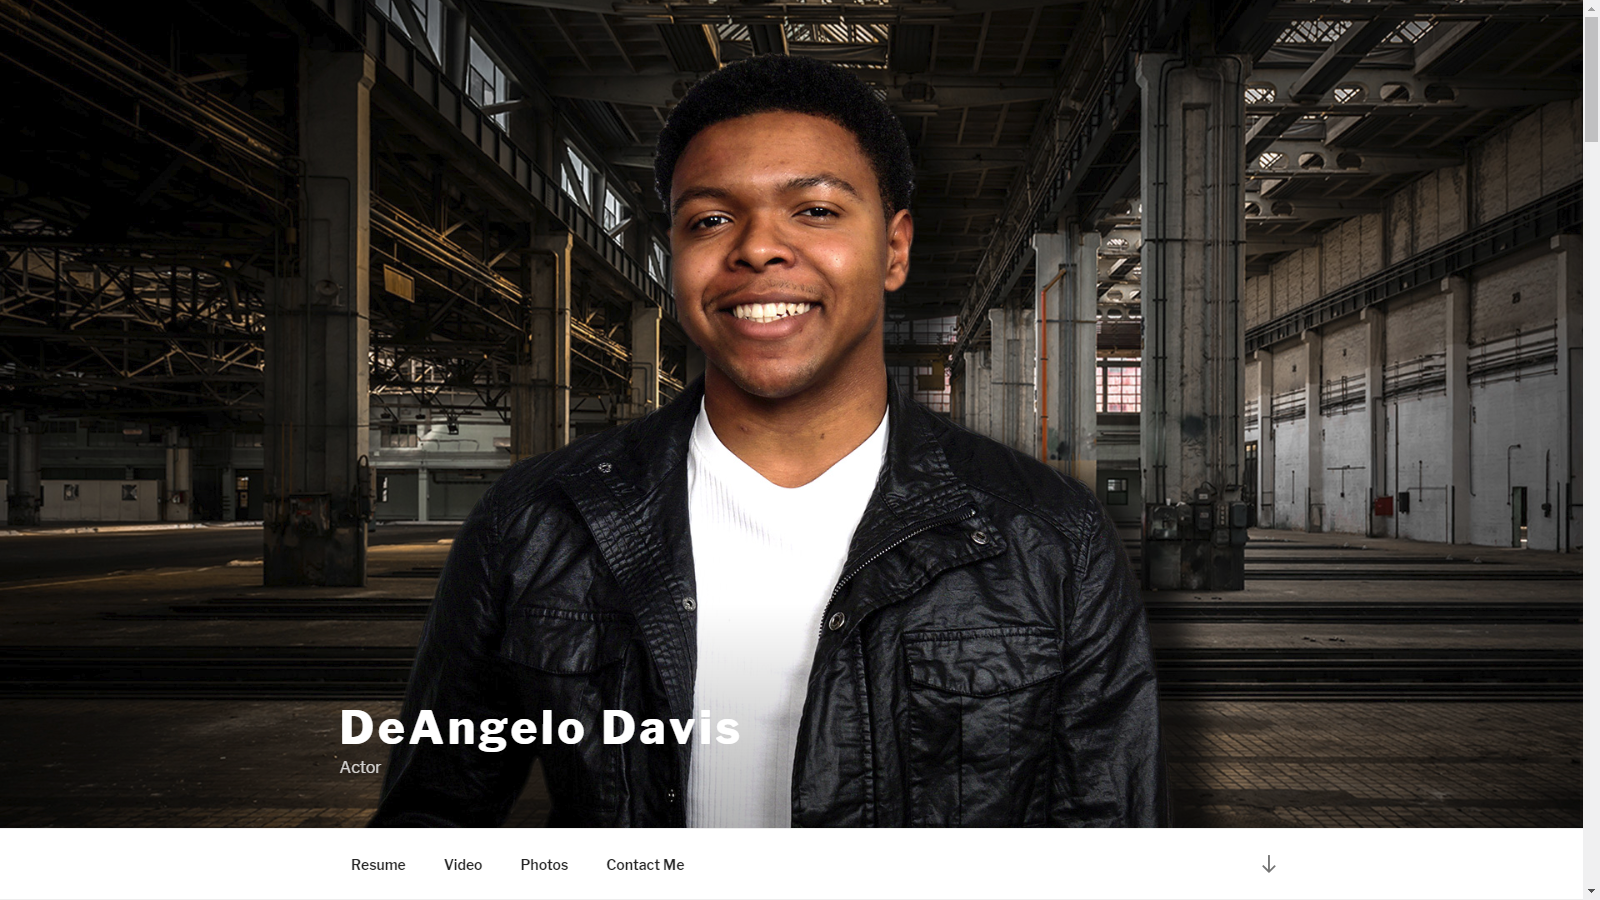 DeAngelo Davis - Actor Website